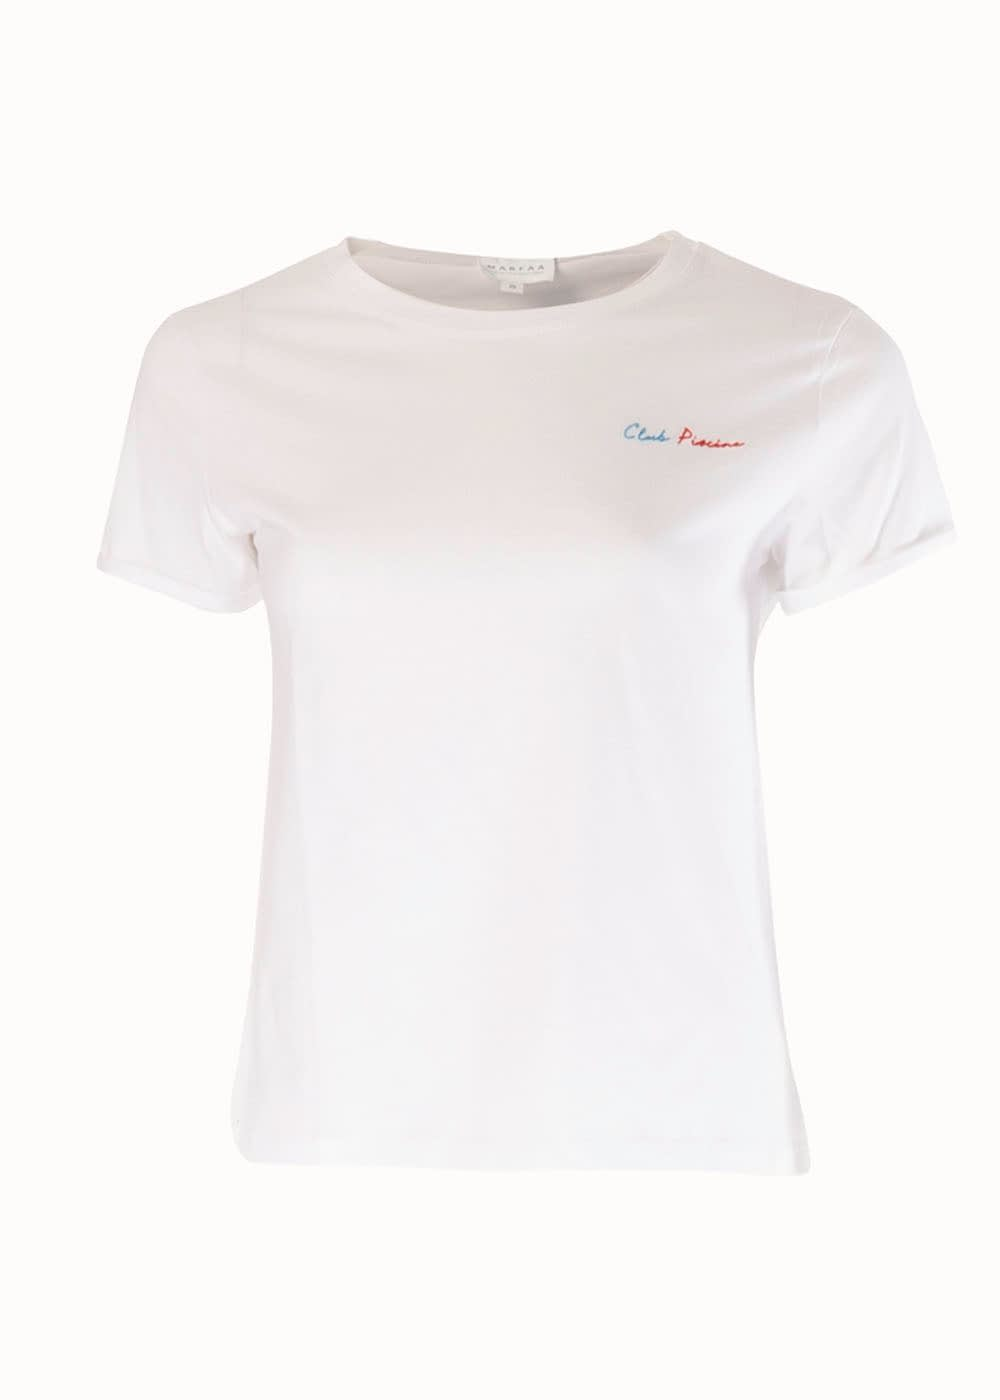 Club Piscine shirt